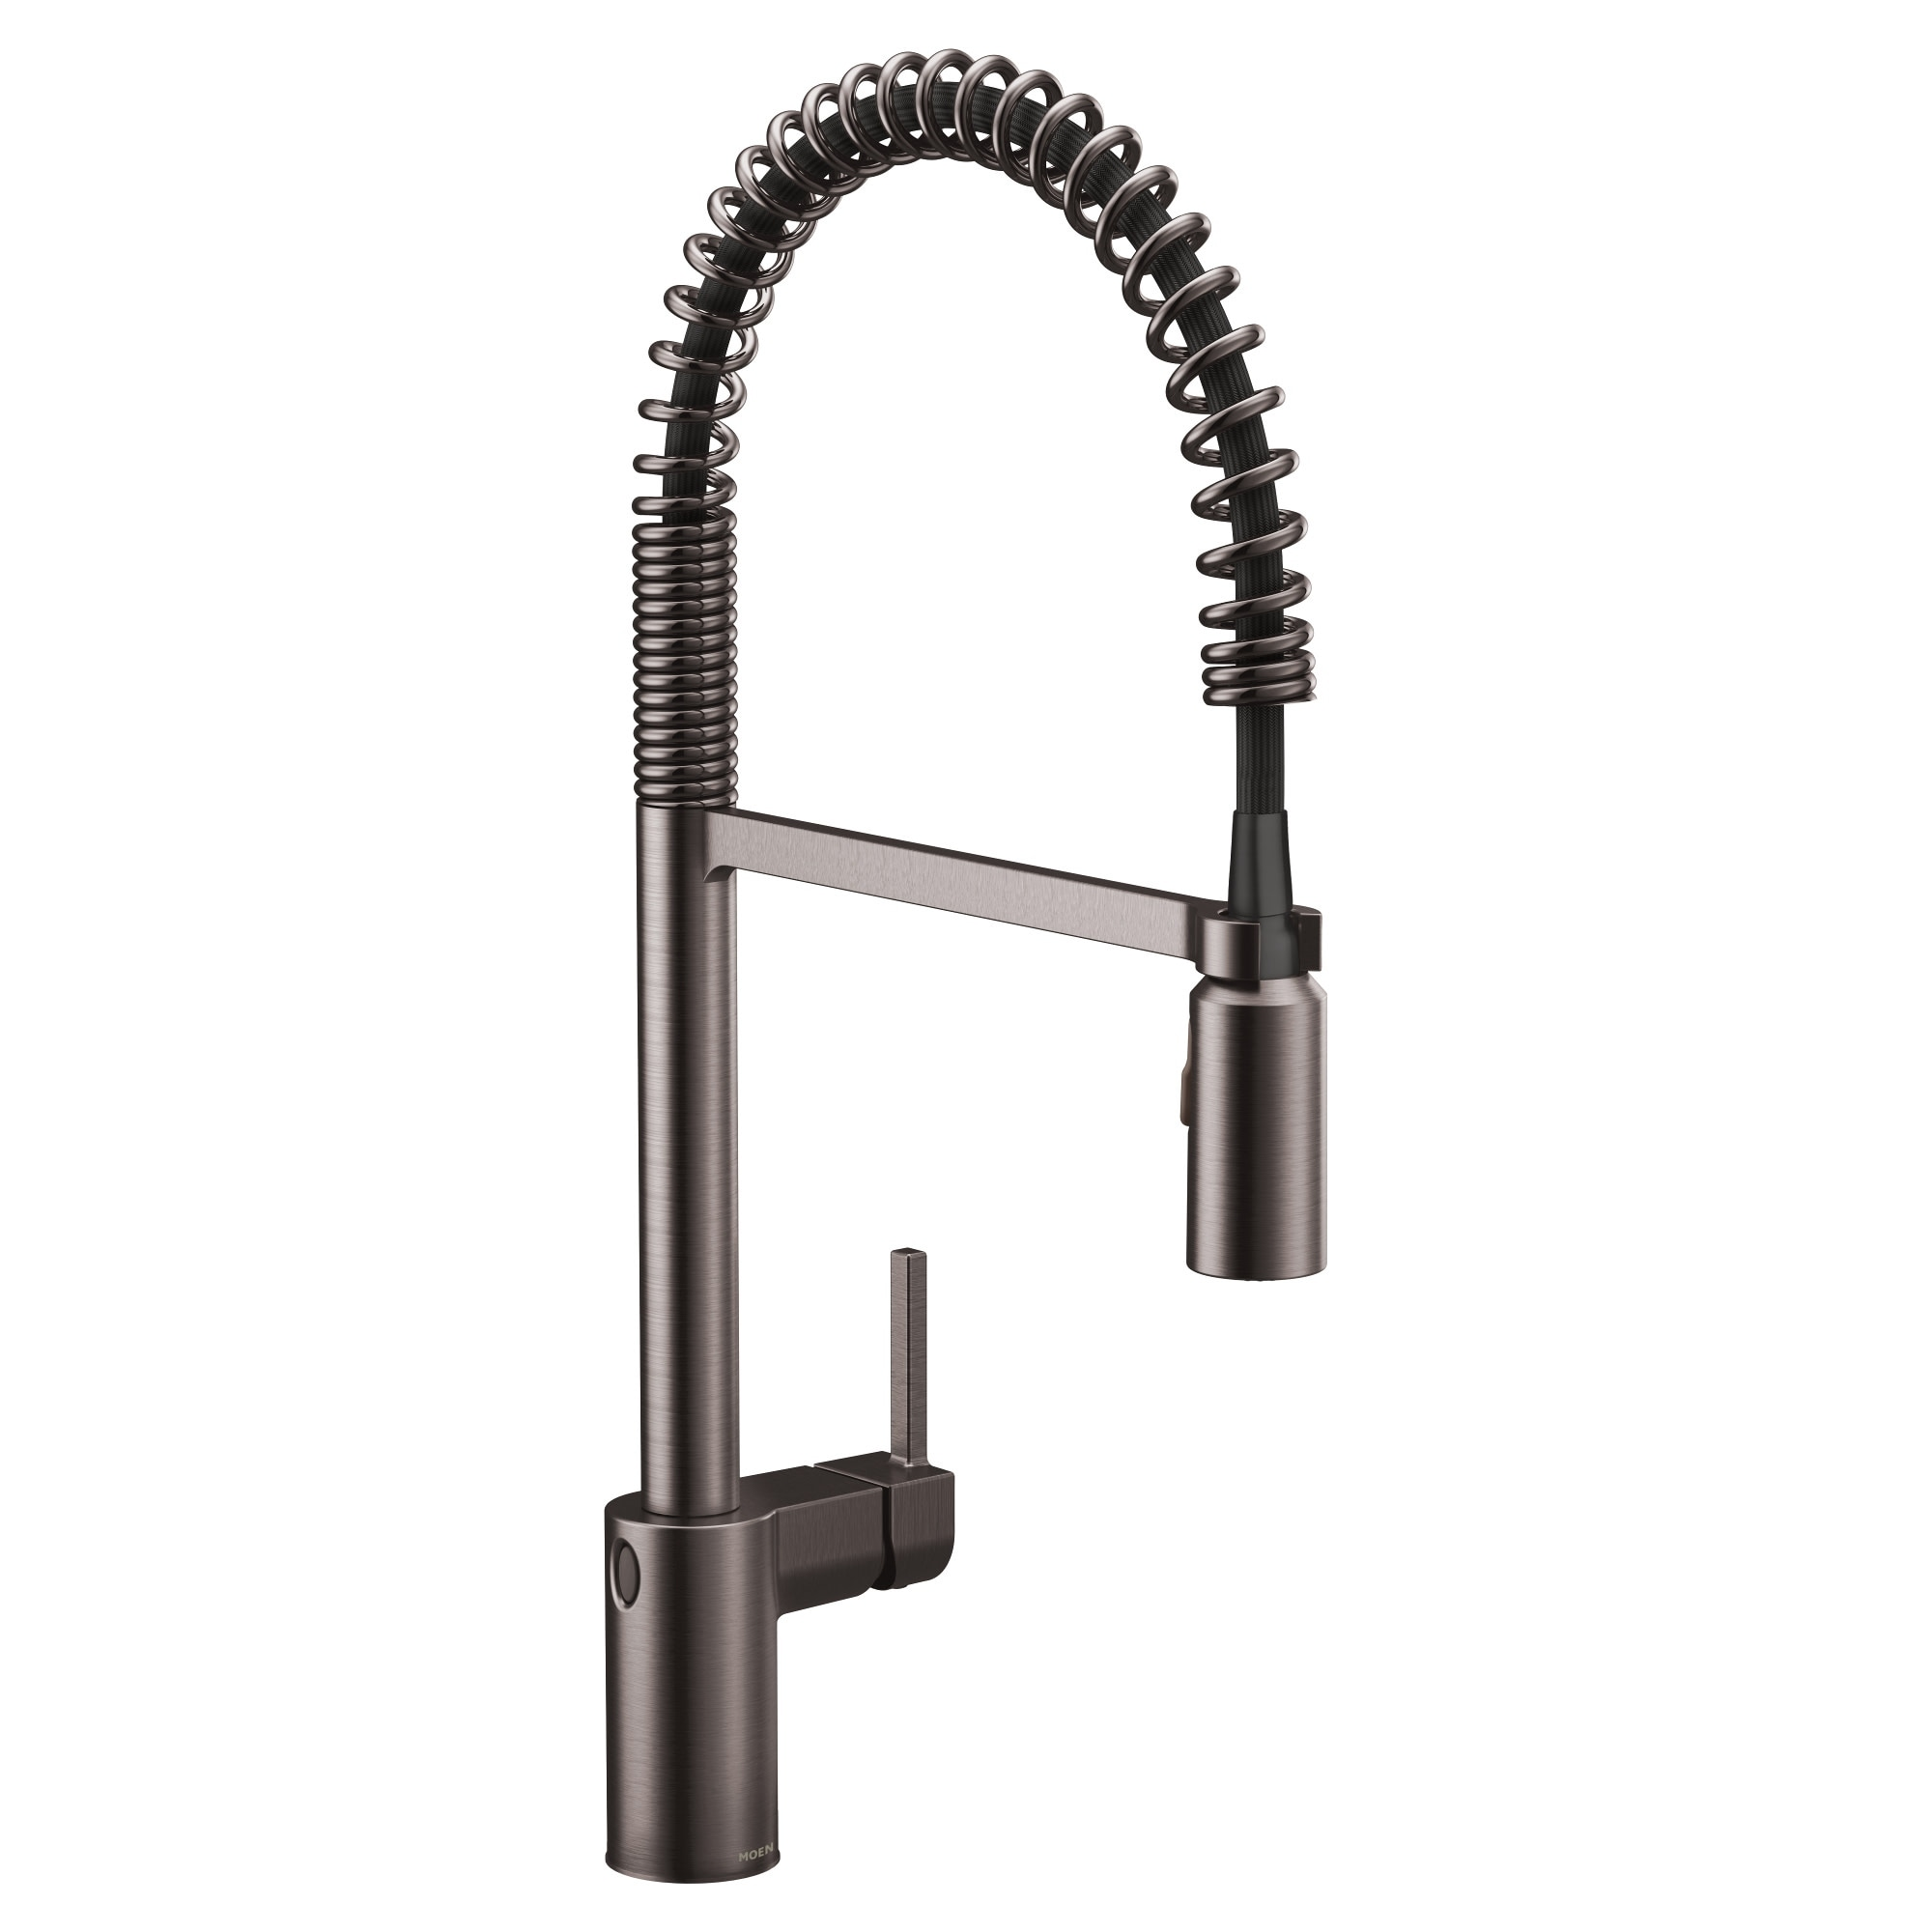 Moen 5923EW Align 1.5 GPM Single Hole Pull Down Kitchen Faucet with  MotionSense Wave, Duralast, Duralock, and Power Clean